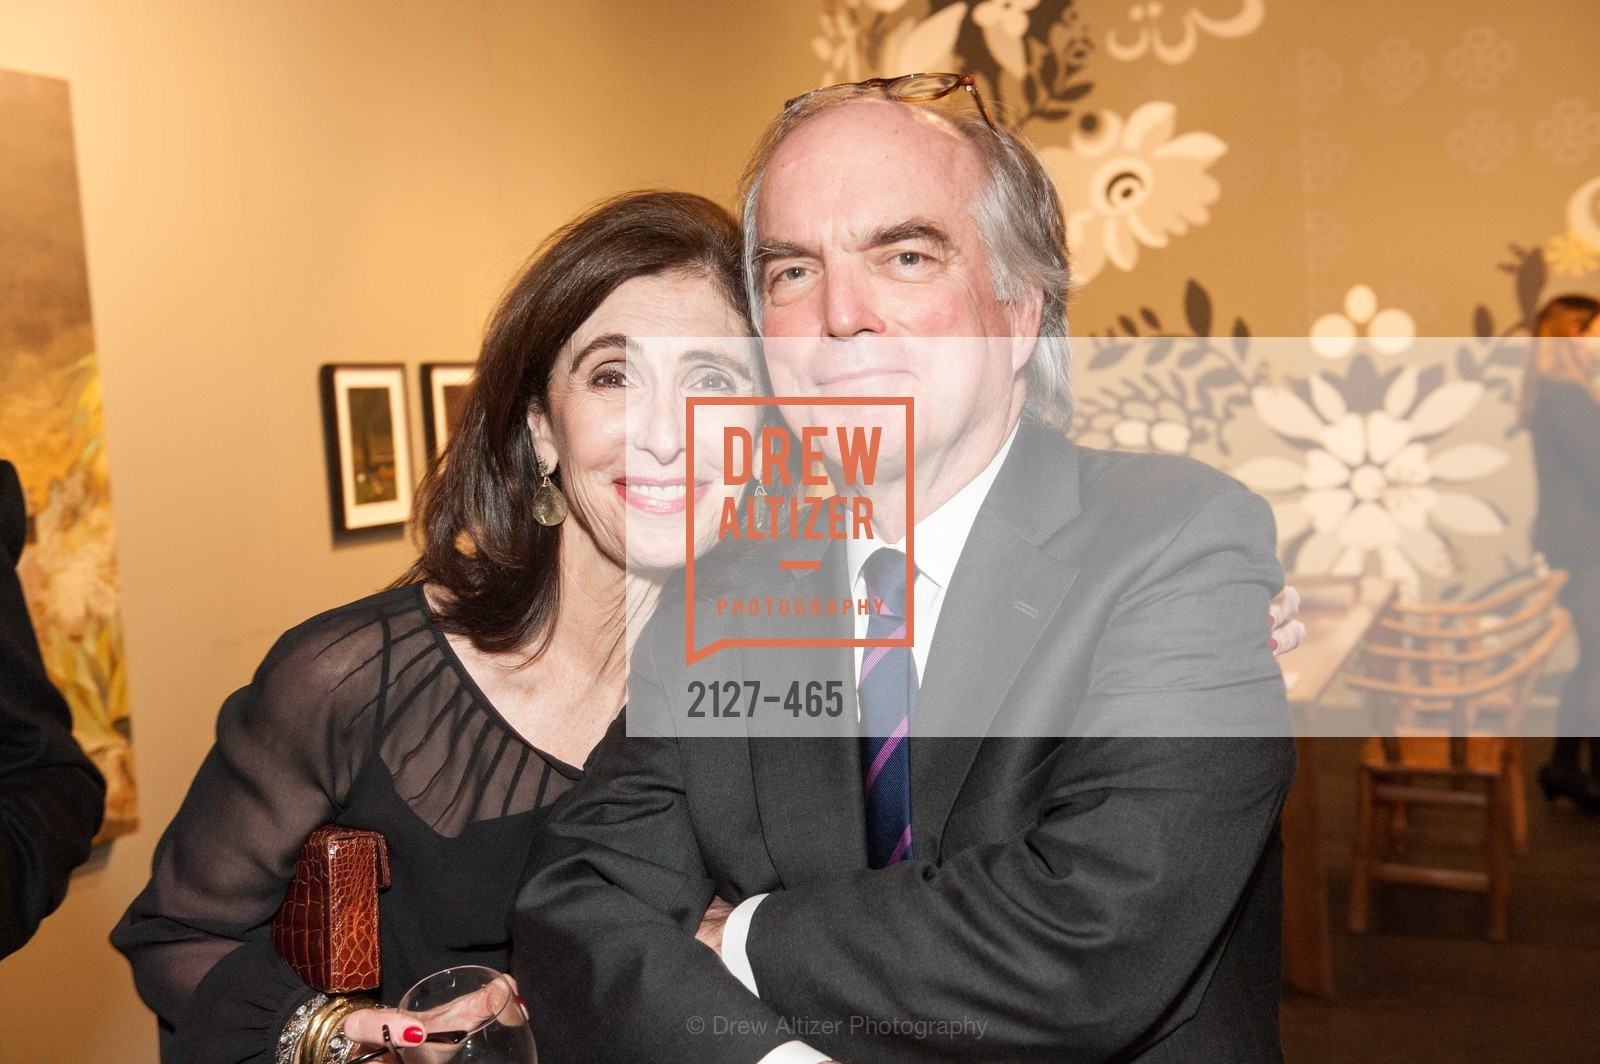 Stephen Merrill, Eileen Michael, Charles Maffett, FOG Design + Art Preview Gala, US. US, January 16th, 2014,Drew Altizer, Drew Altizer Photography, full-service agency, private events, San Francisco photographer, photographer california